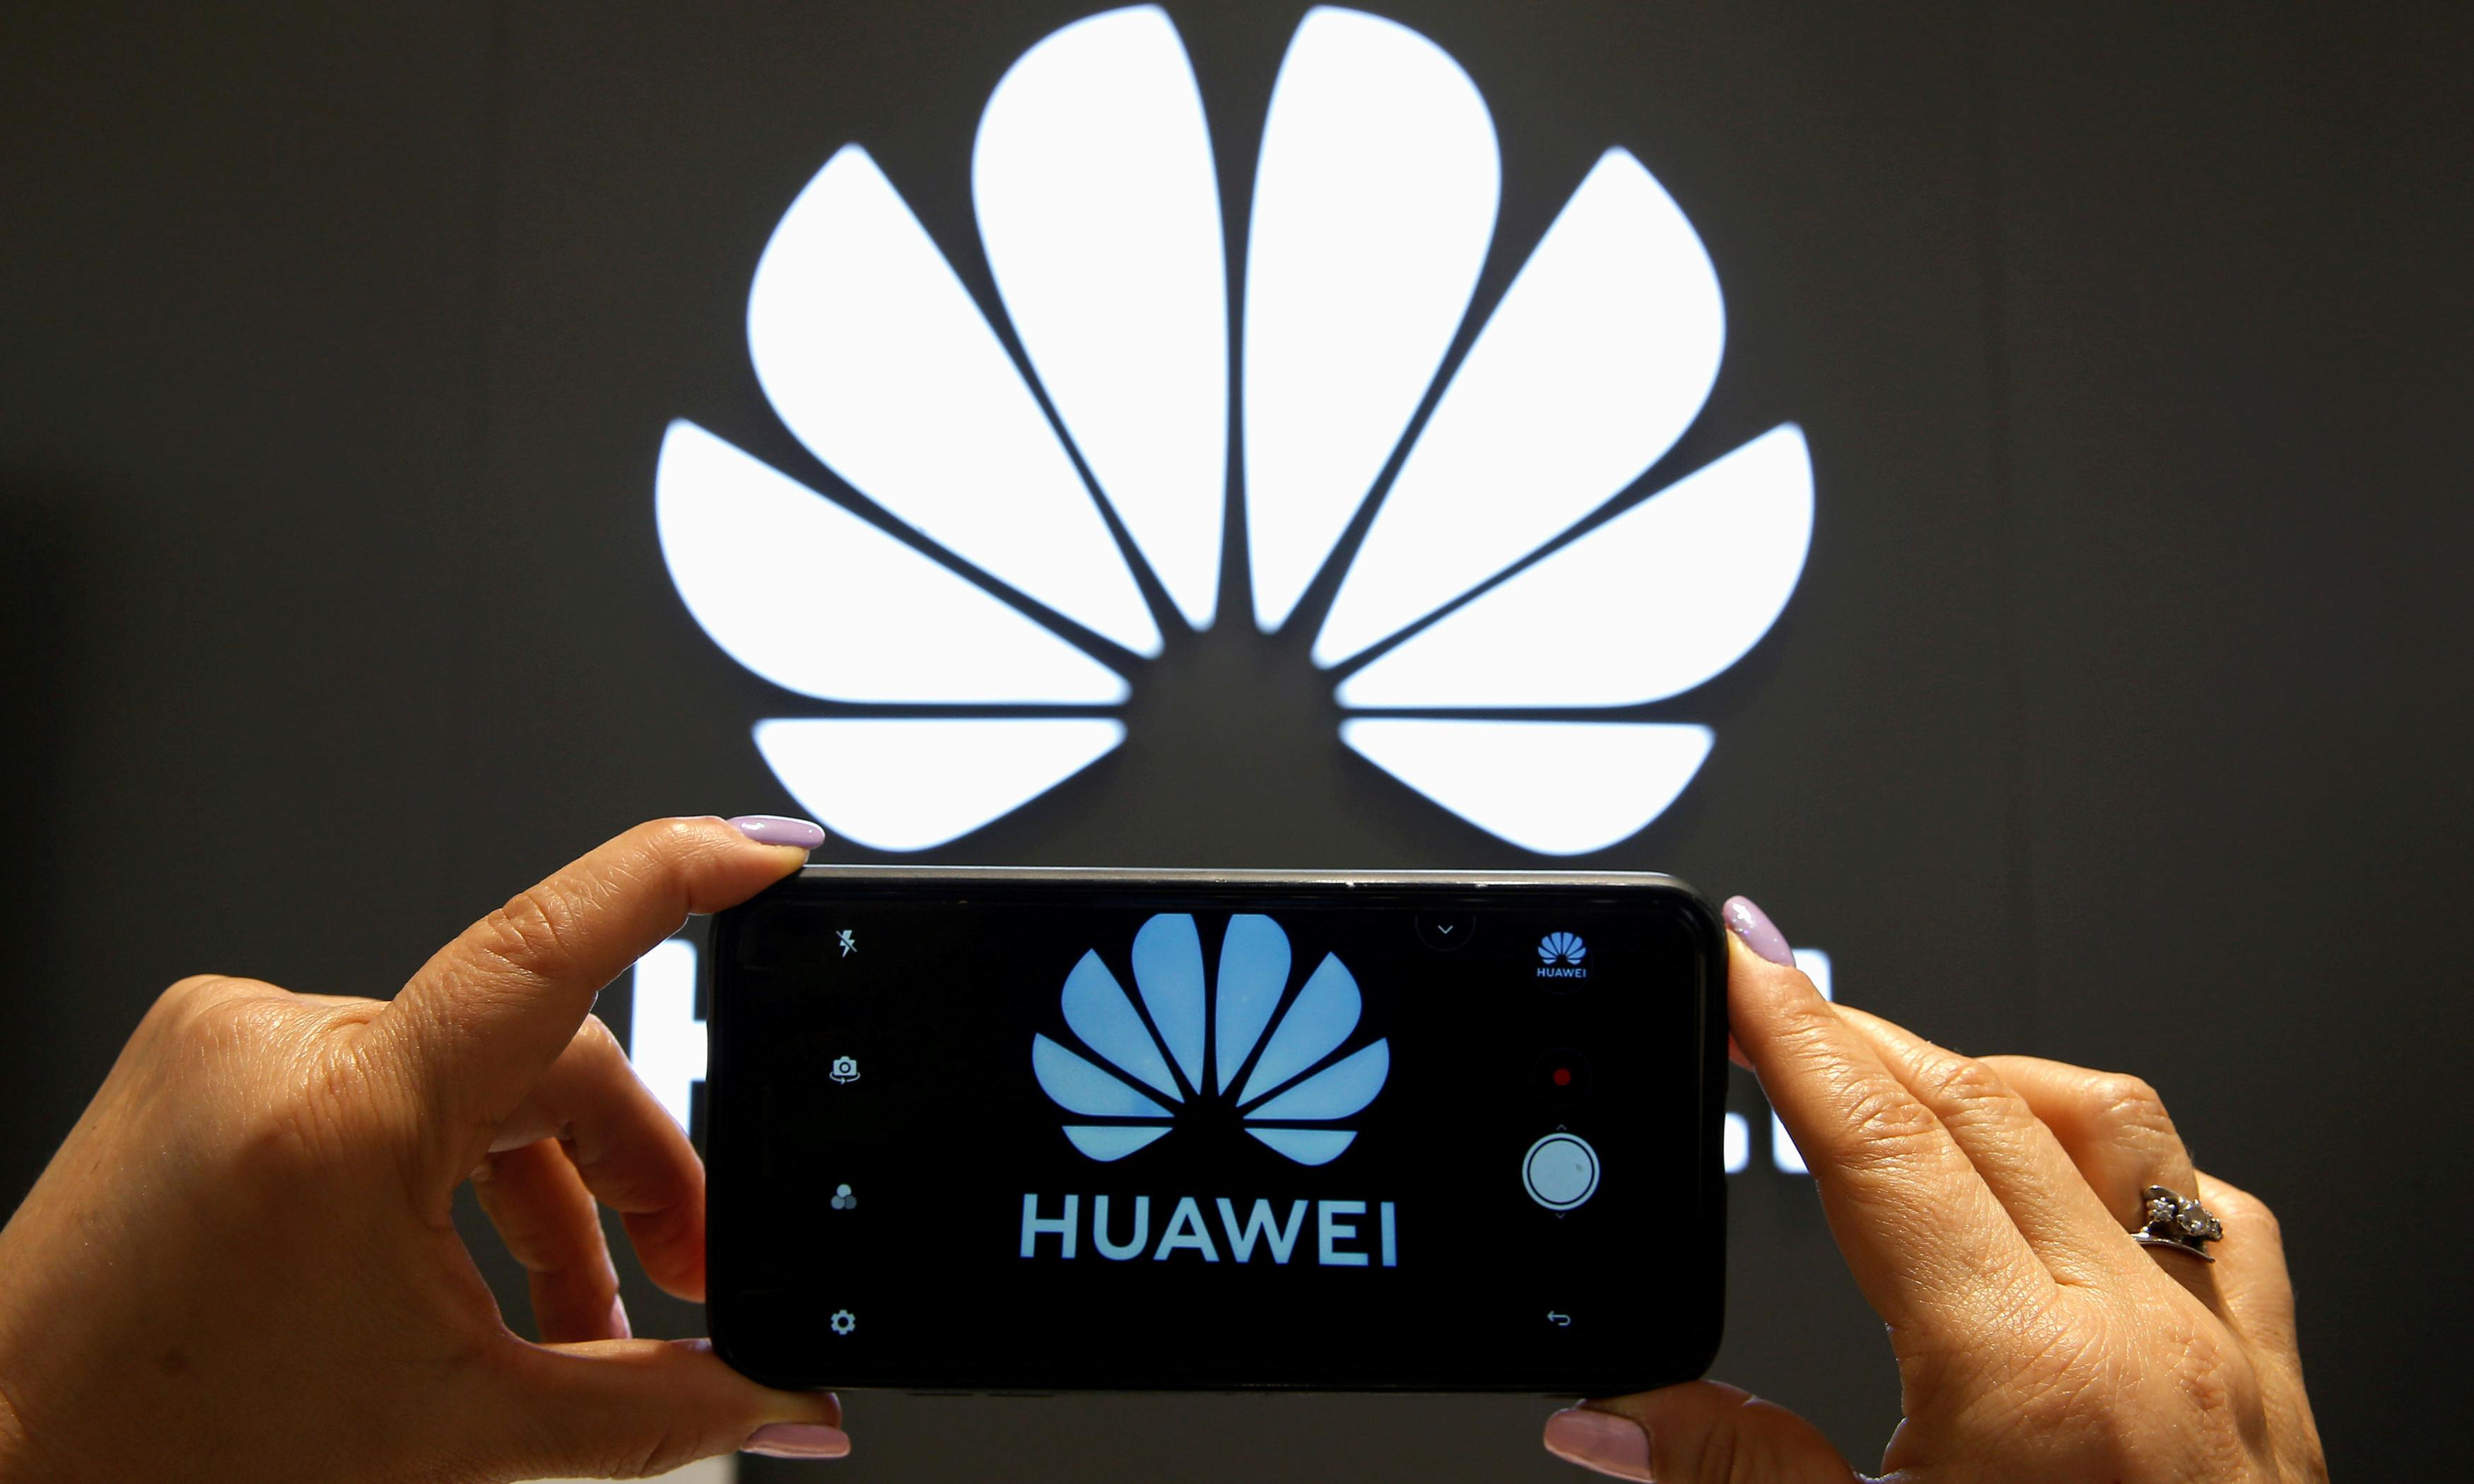 Huawei helped North Korea build wireless network – US reports